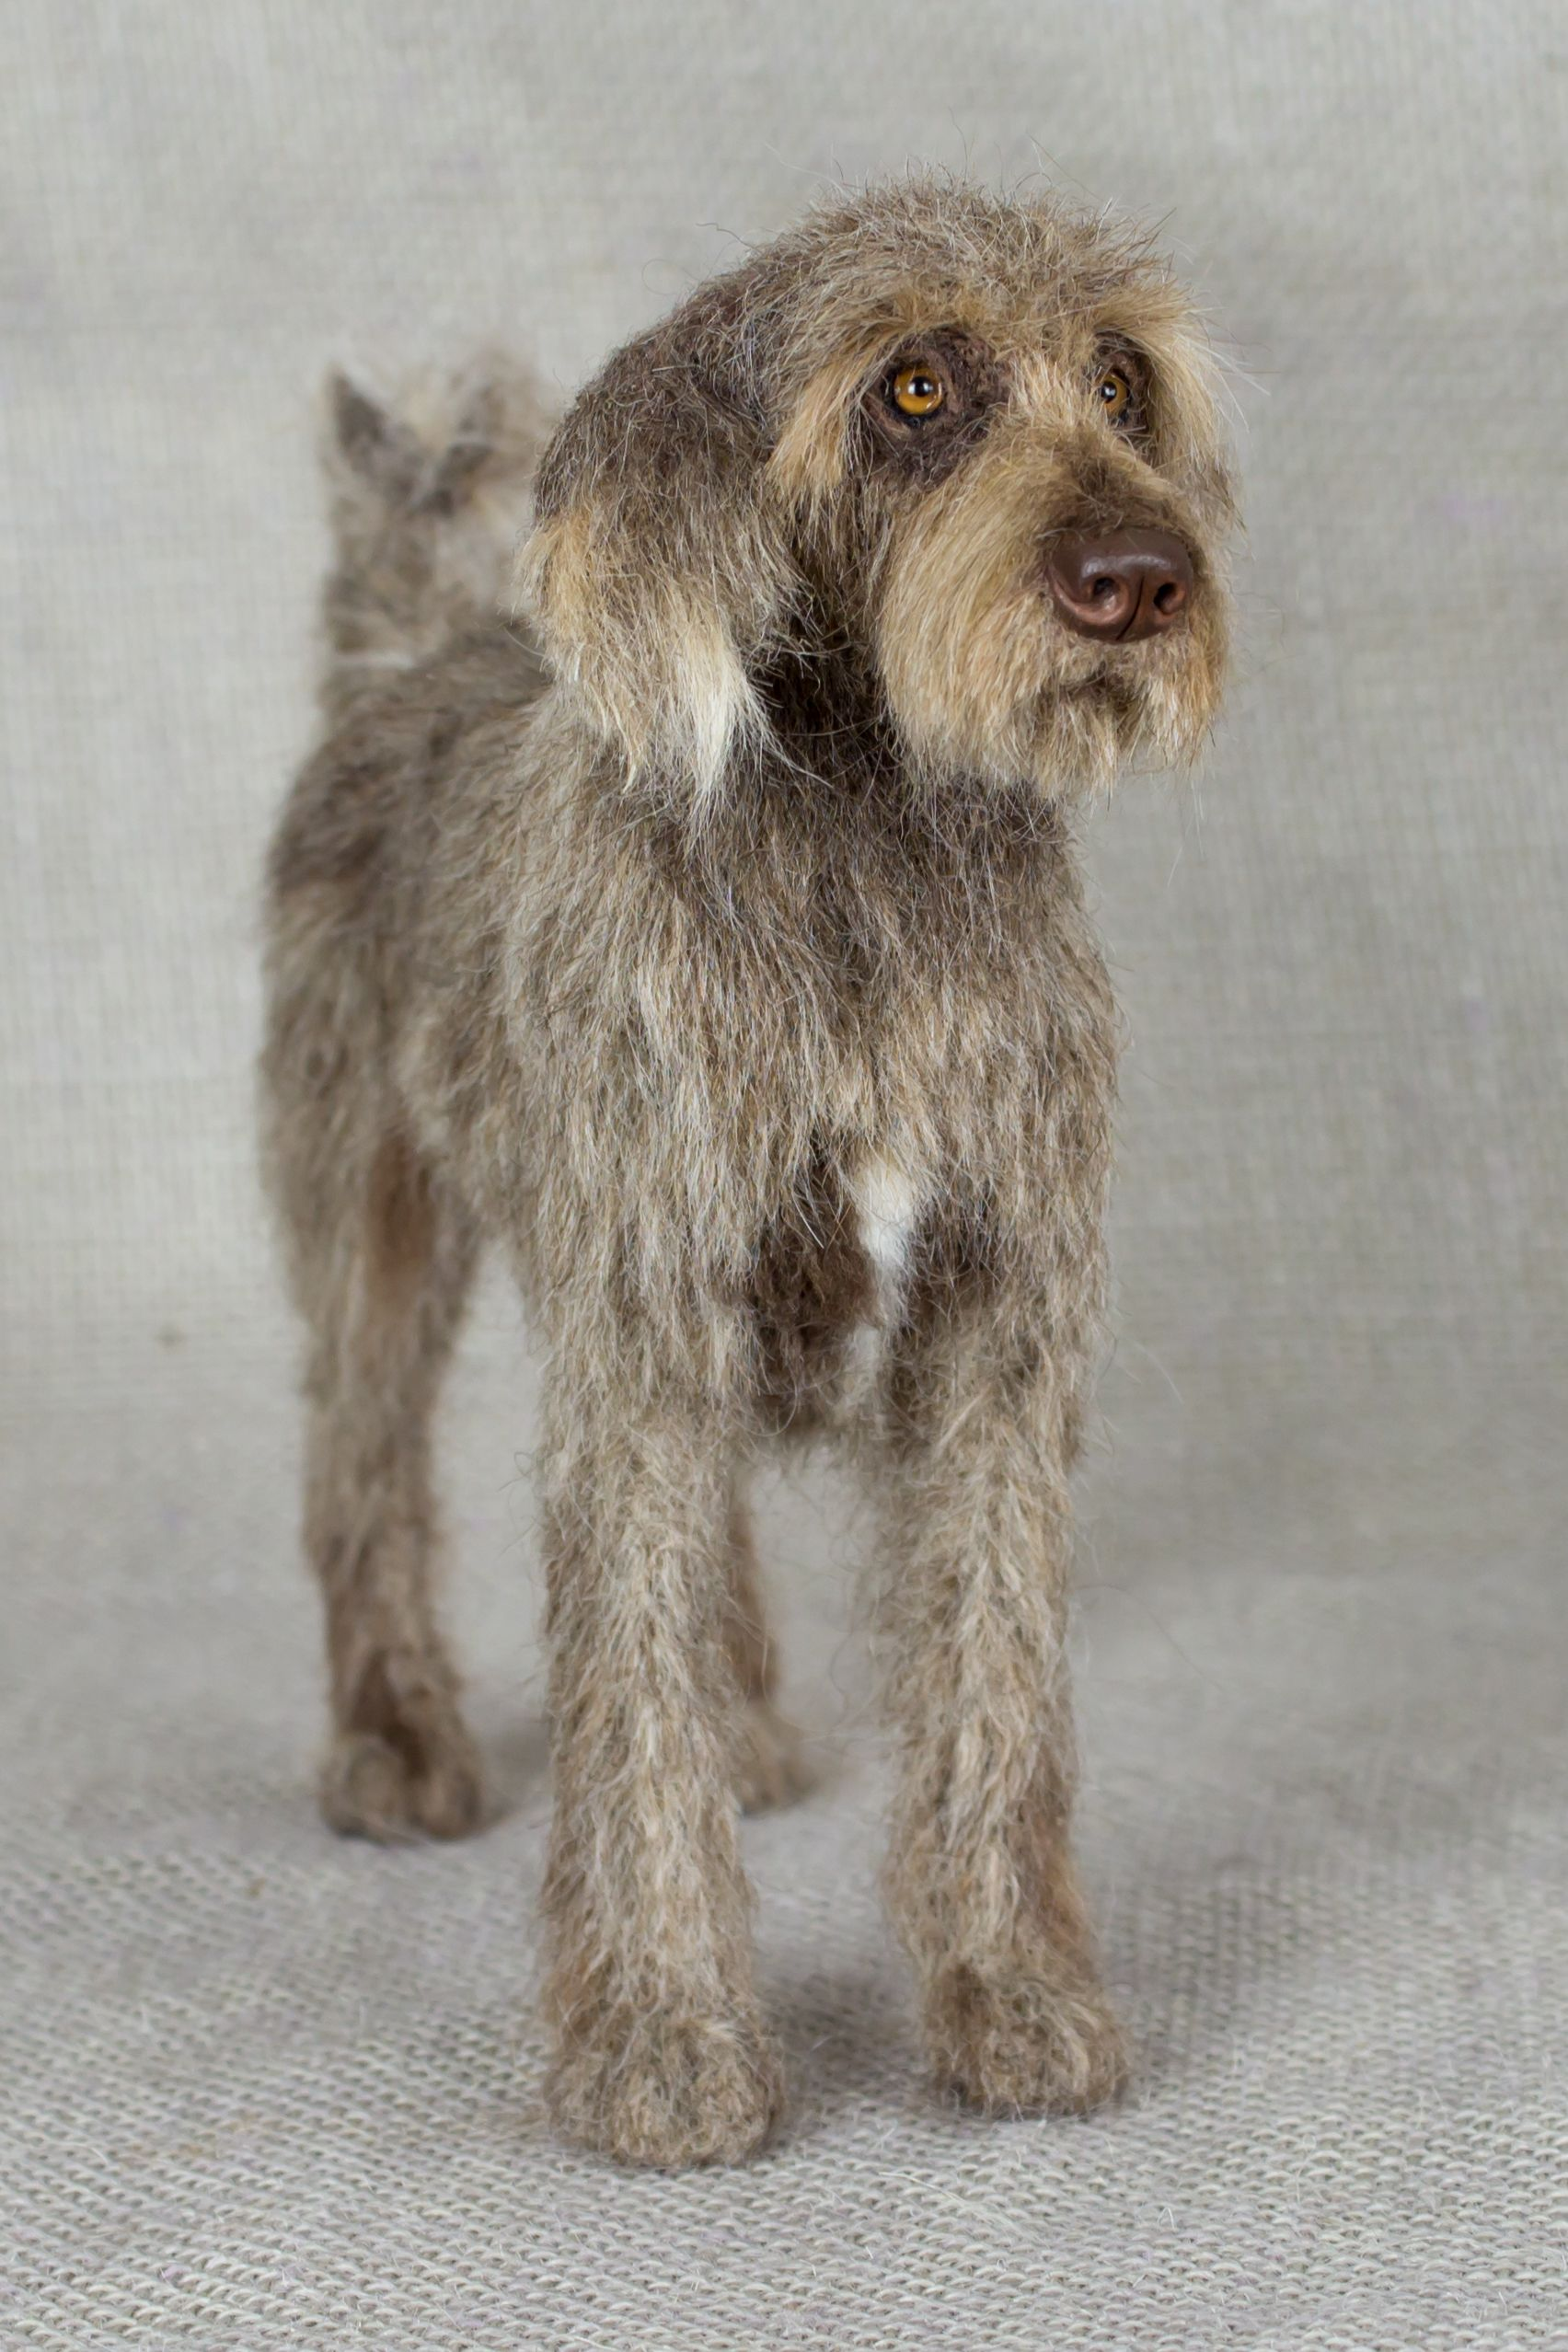 Bennie the Dog Needle felted animal sculpture by Megan